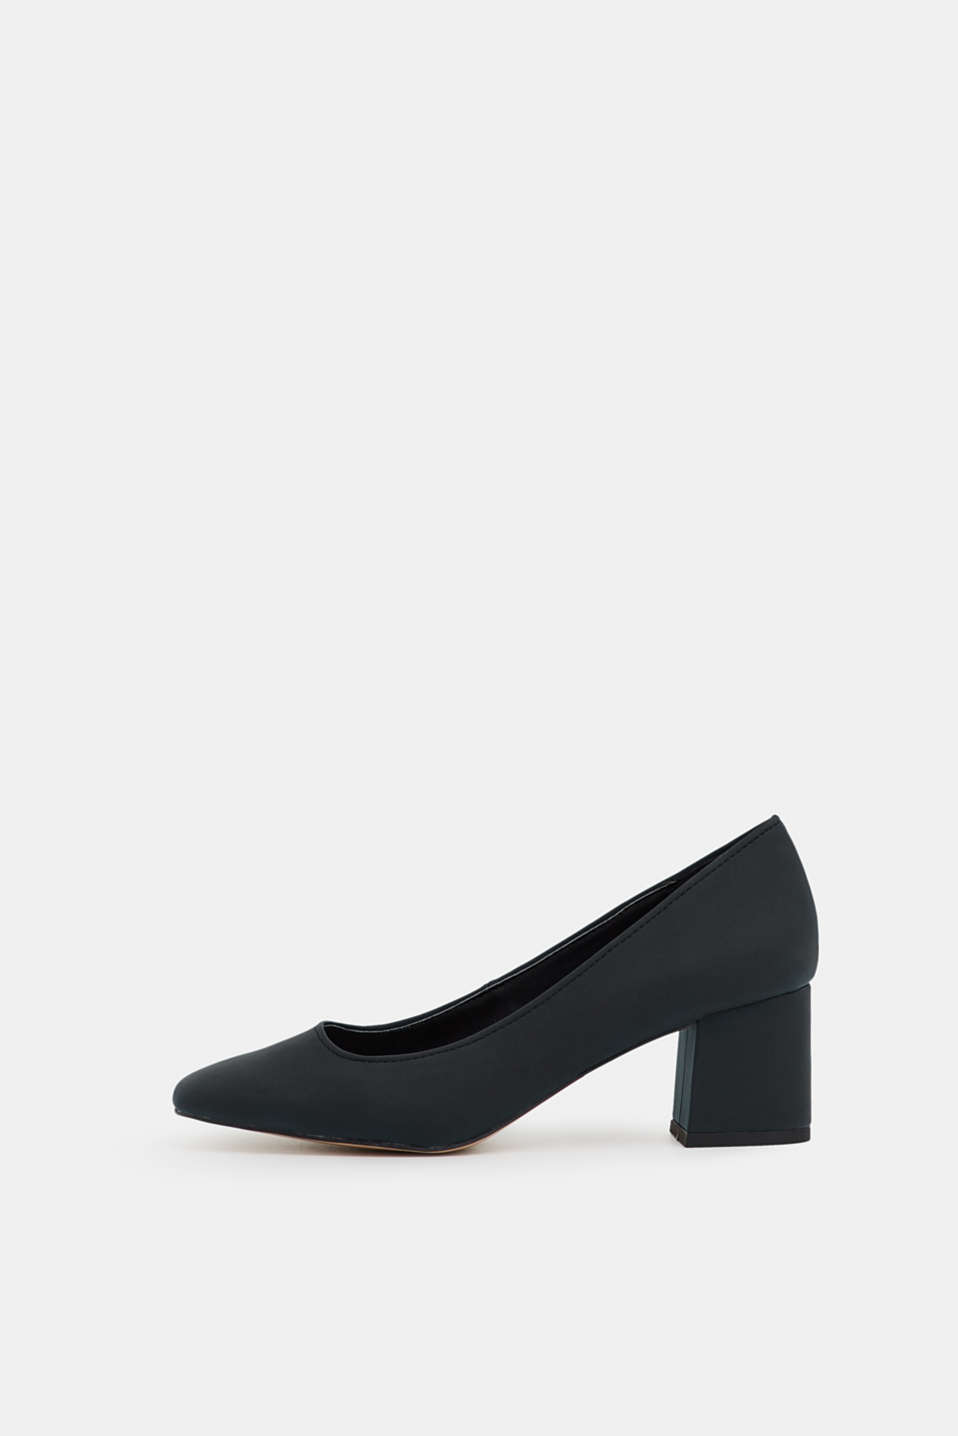 Esprit - Court shoes with a block heel, in faux nubuck